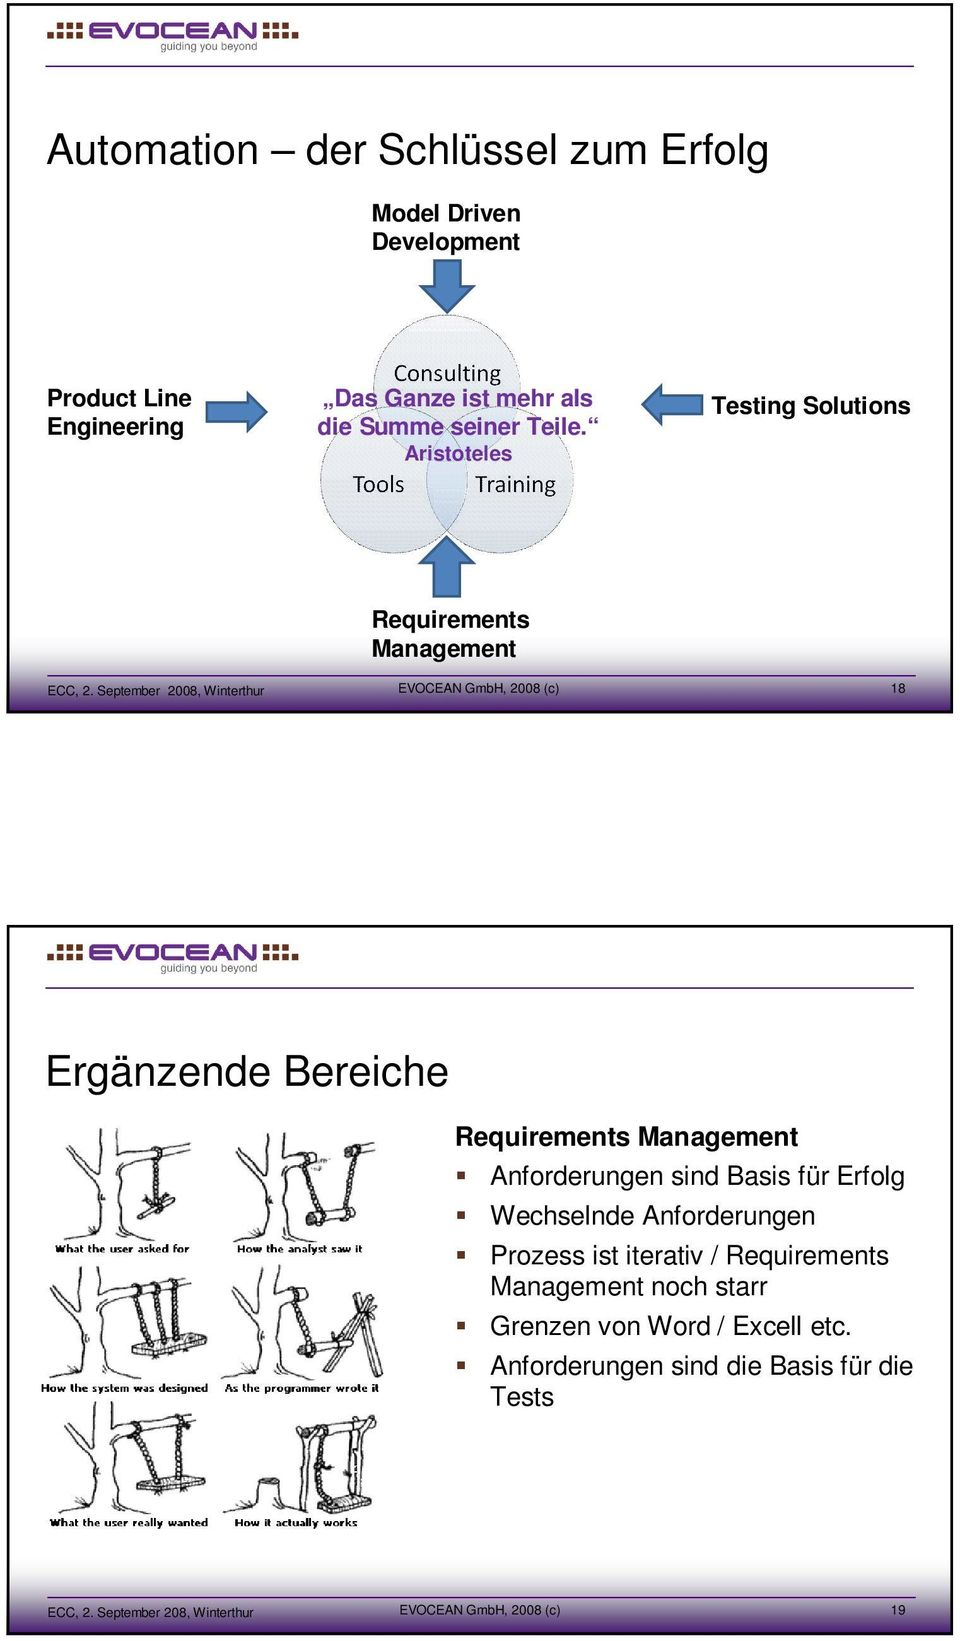 Aristoteles Testing Solutions Requirements Management 18 Ergänzende Bereiche Requirements Management Anforderungen